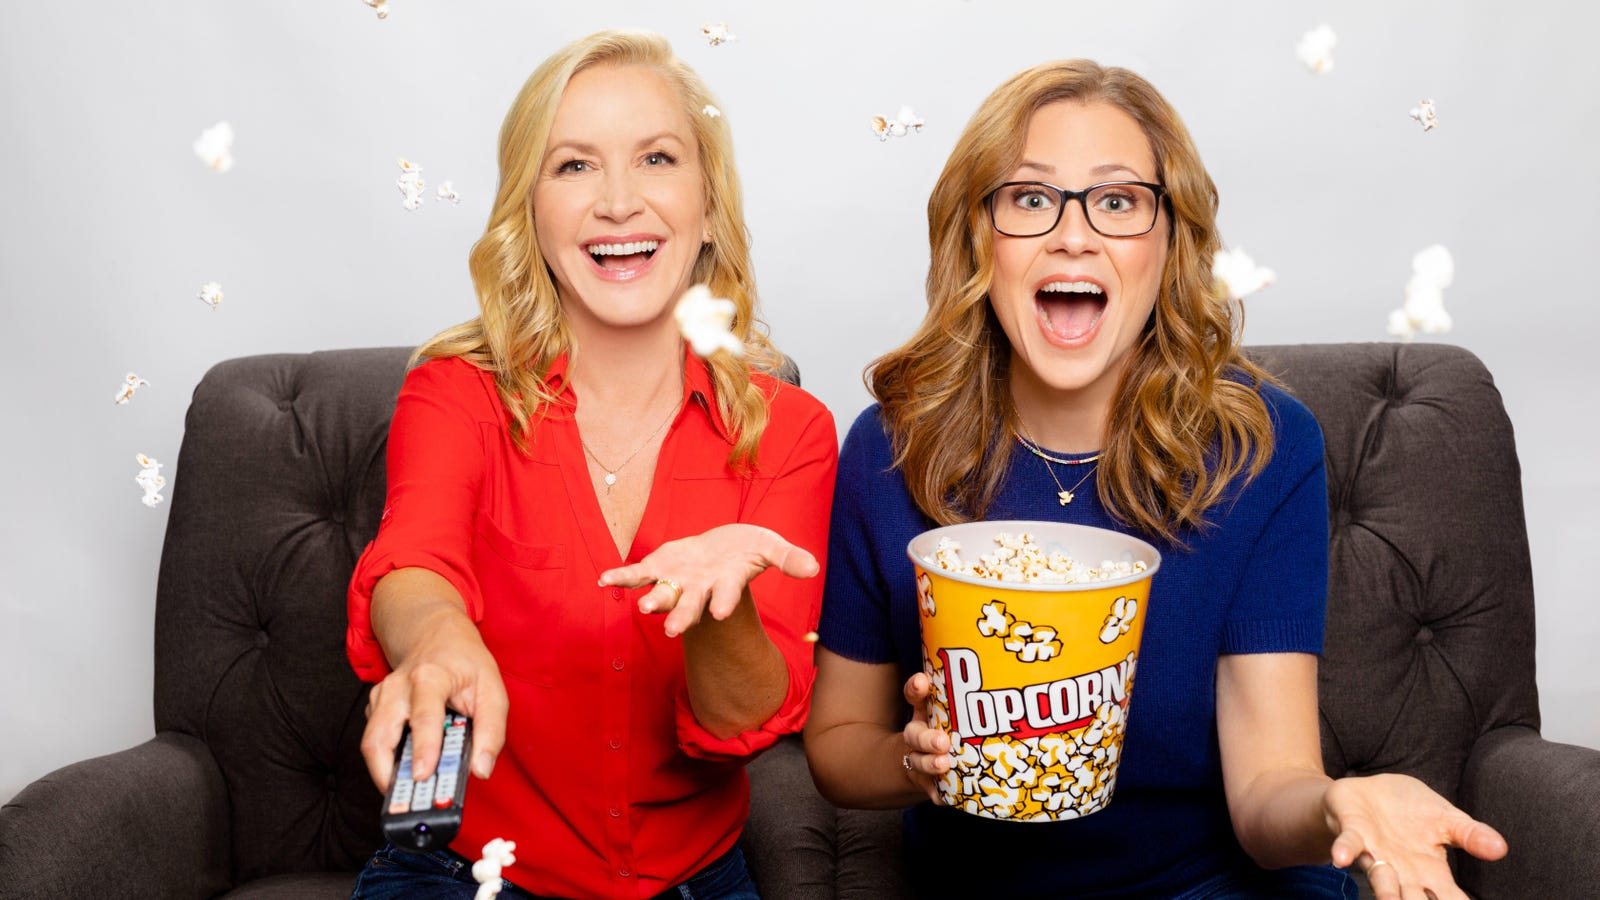 Jenna Fischer and Angela Kinsey, benevolent soup snakes, are launching the Office Ladies podcast